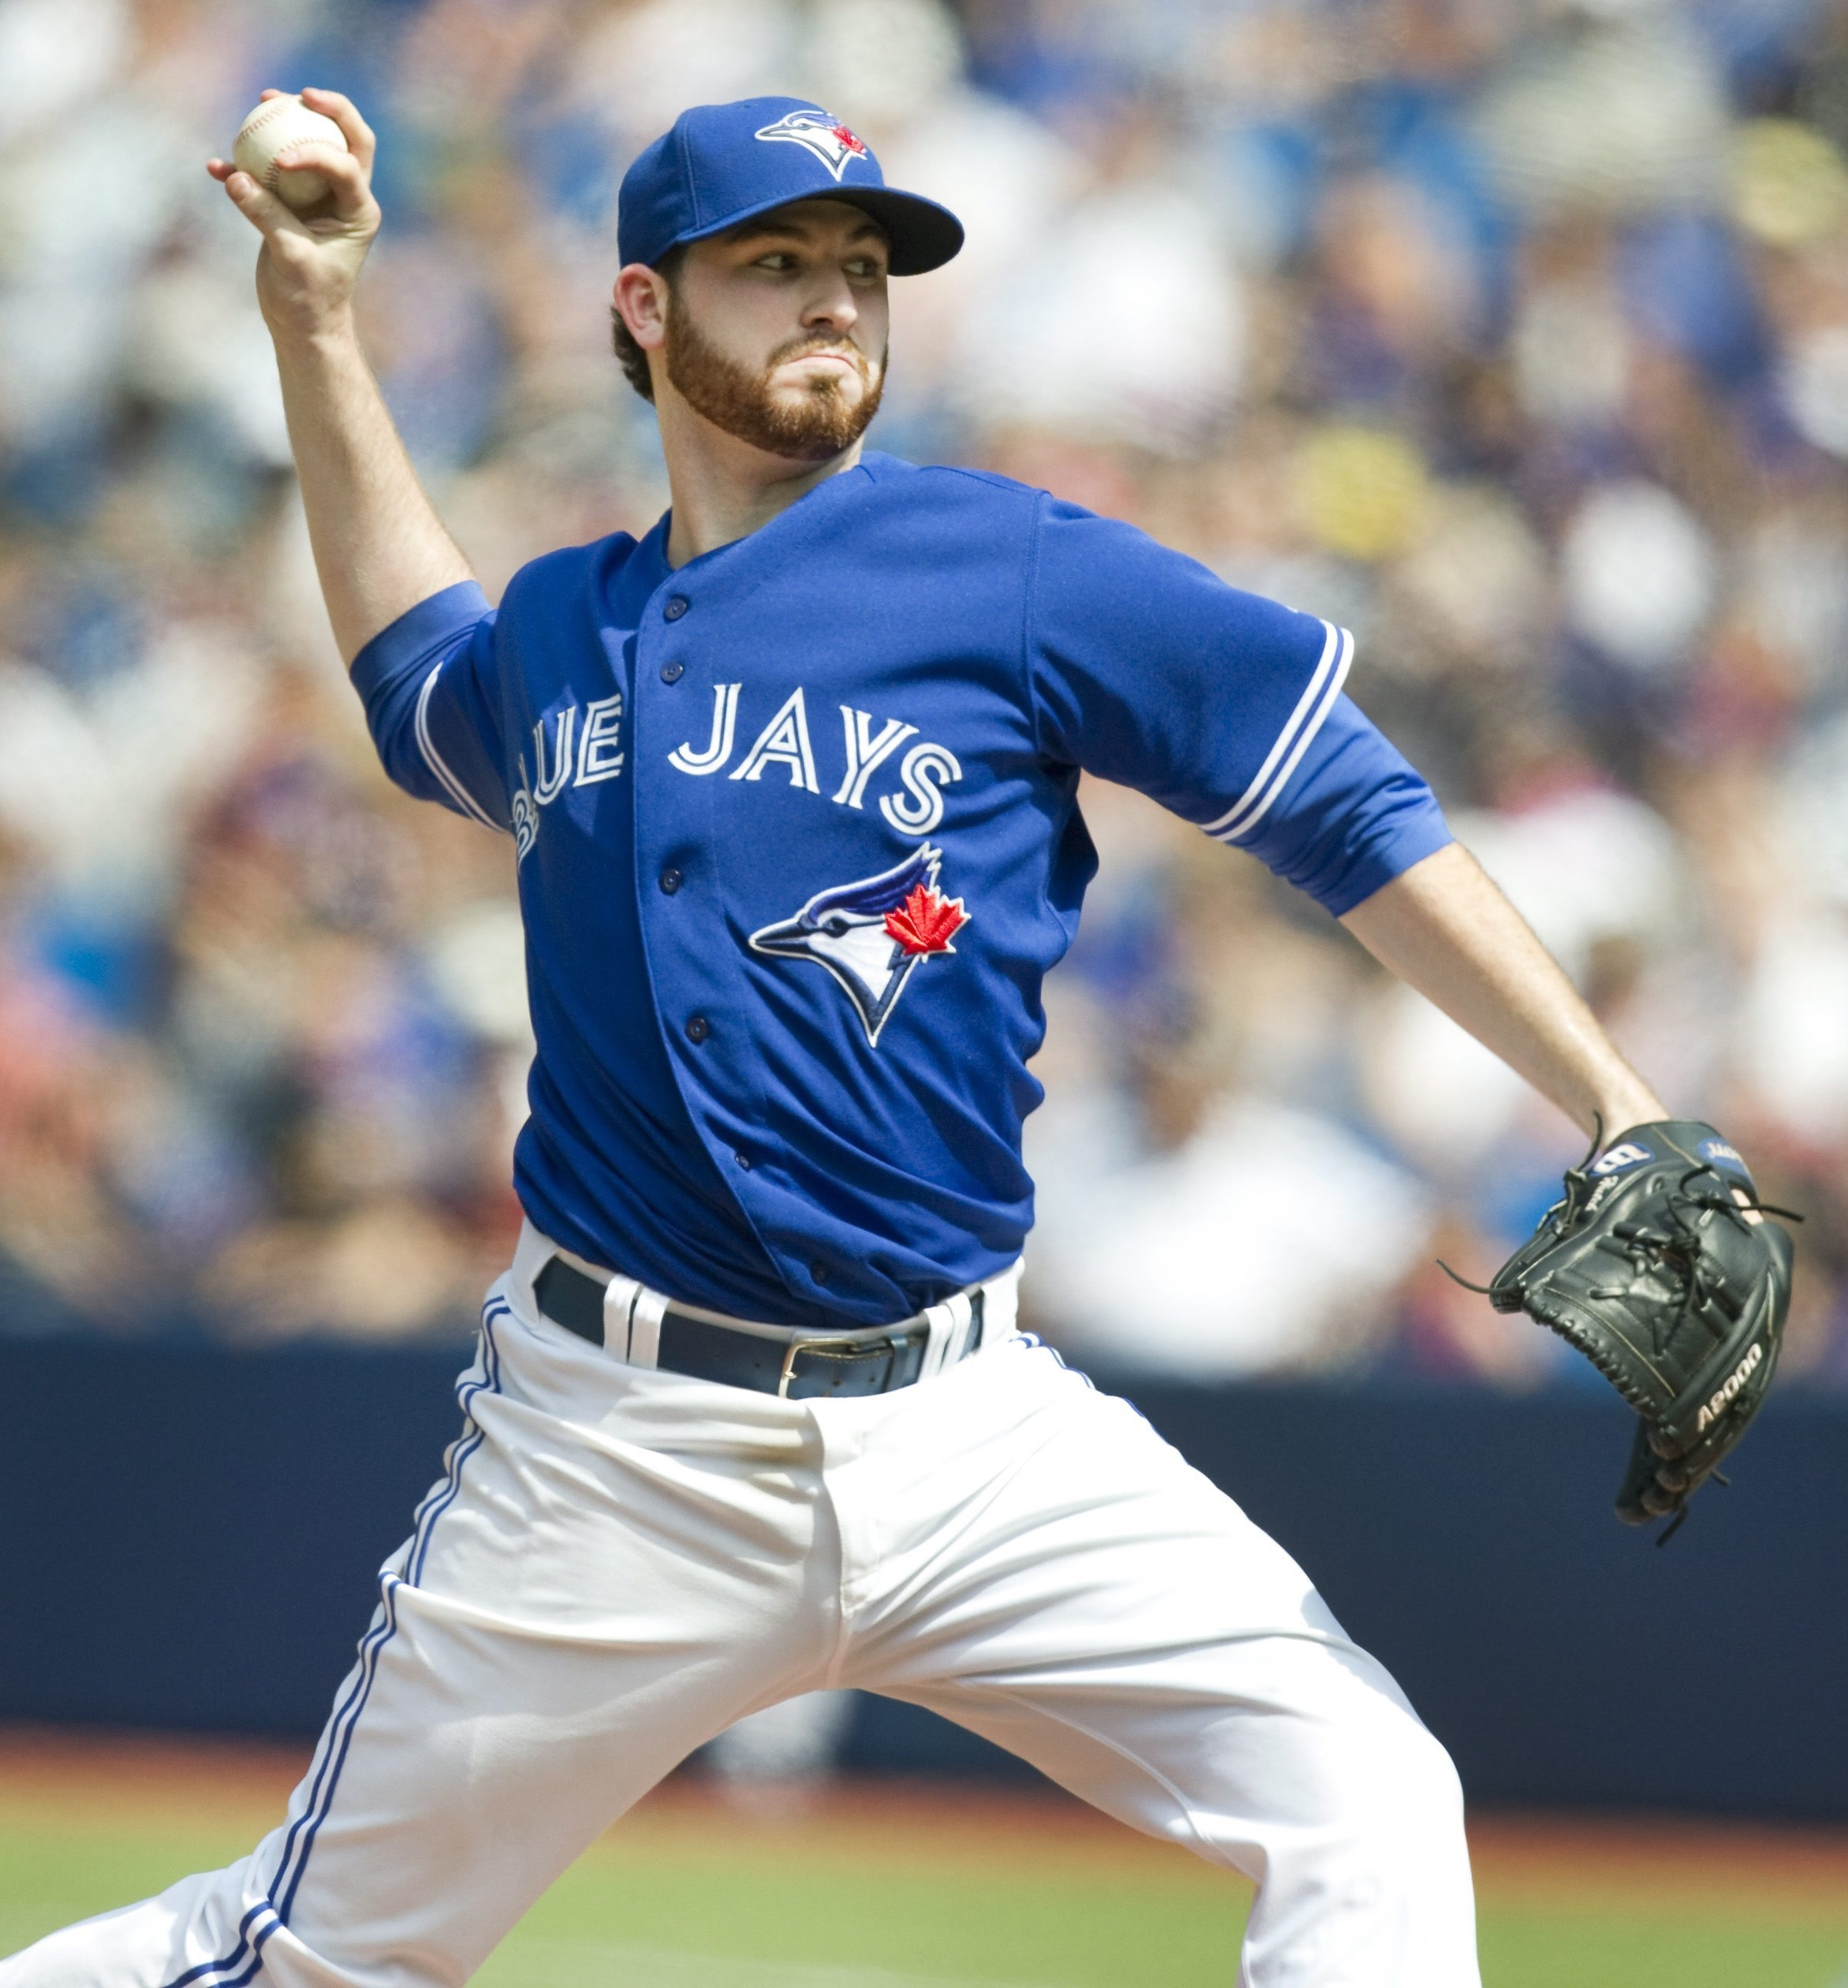 Toronto Blue Jays' starting pitcher Drew Hutchison held the Yankees to one hit, a double by Mark Teixeira.